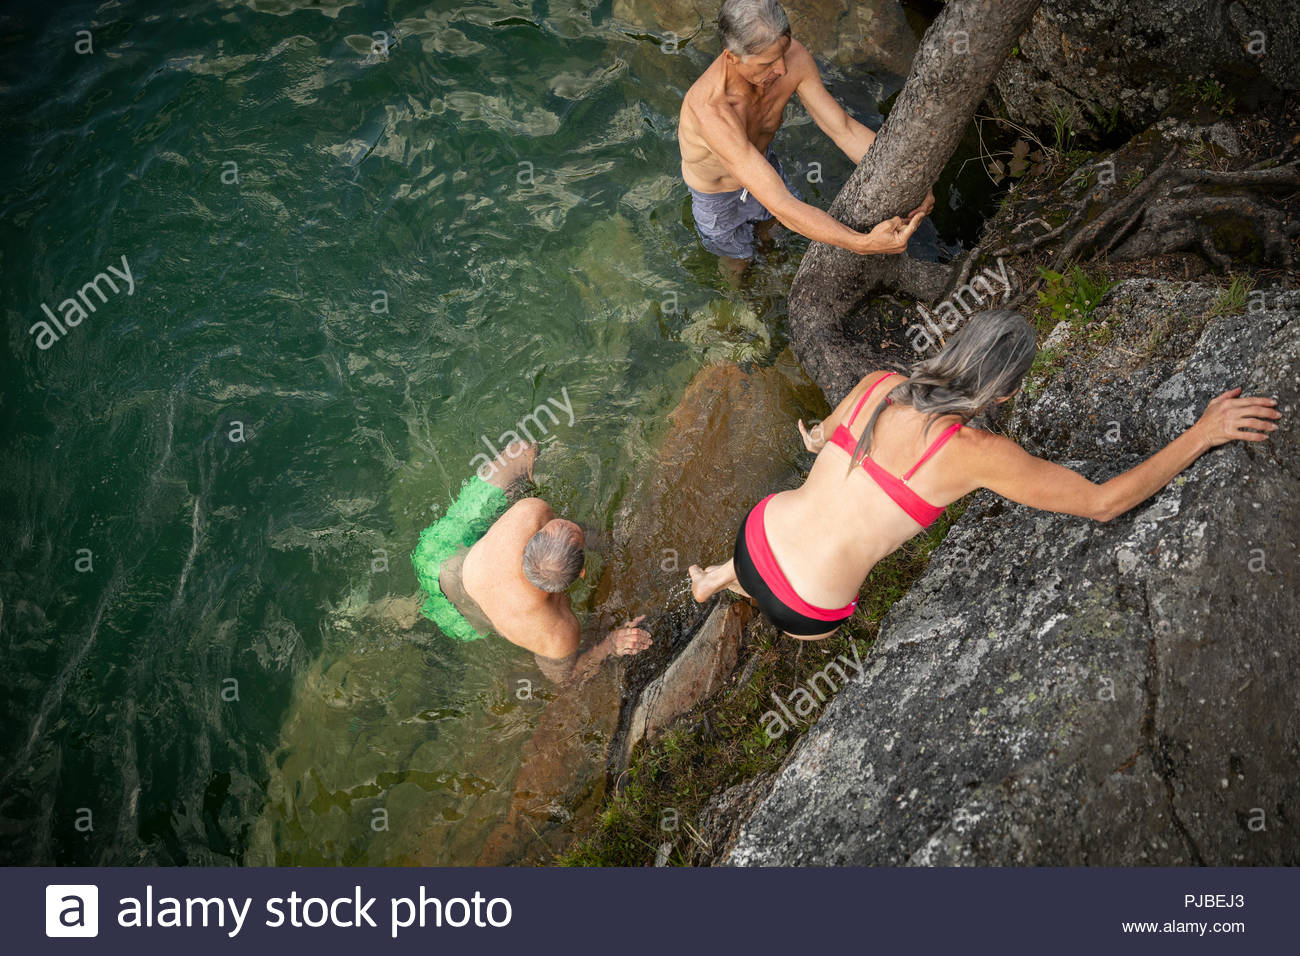 Mature couples swimming in lake, climbing rocks - Stock Image